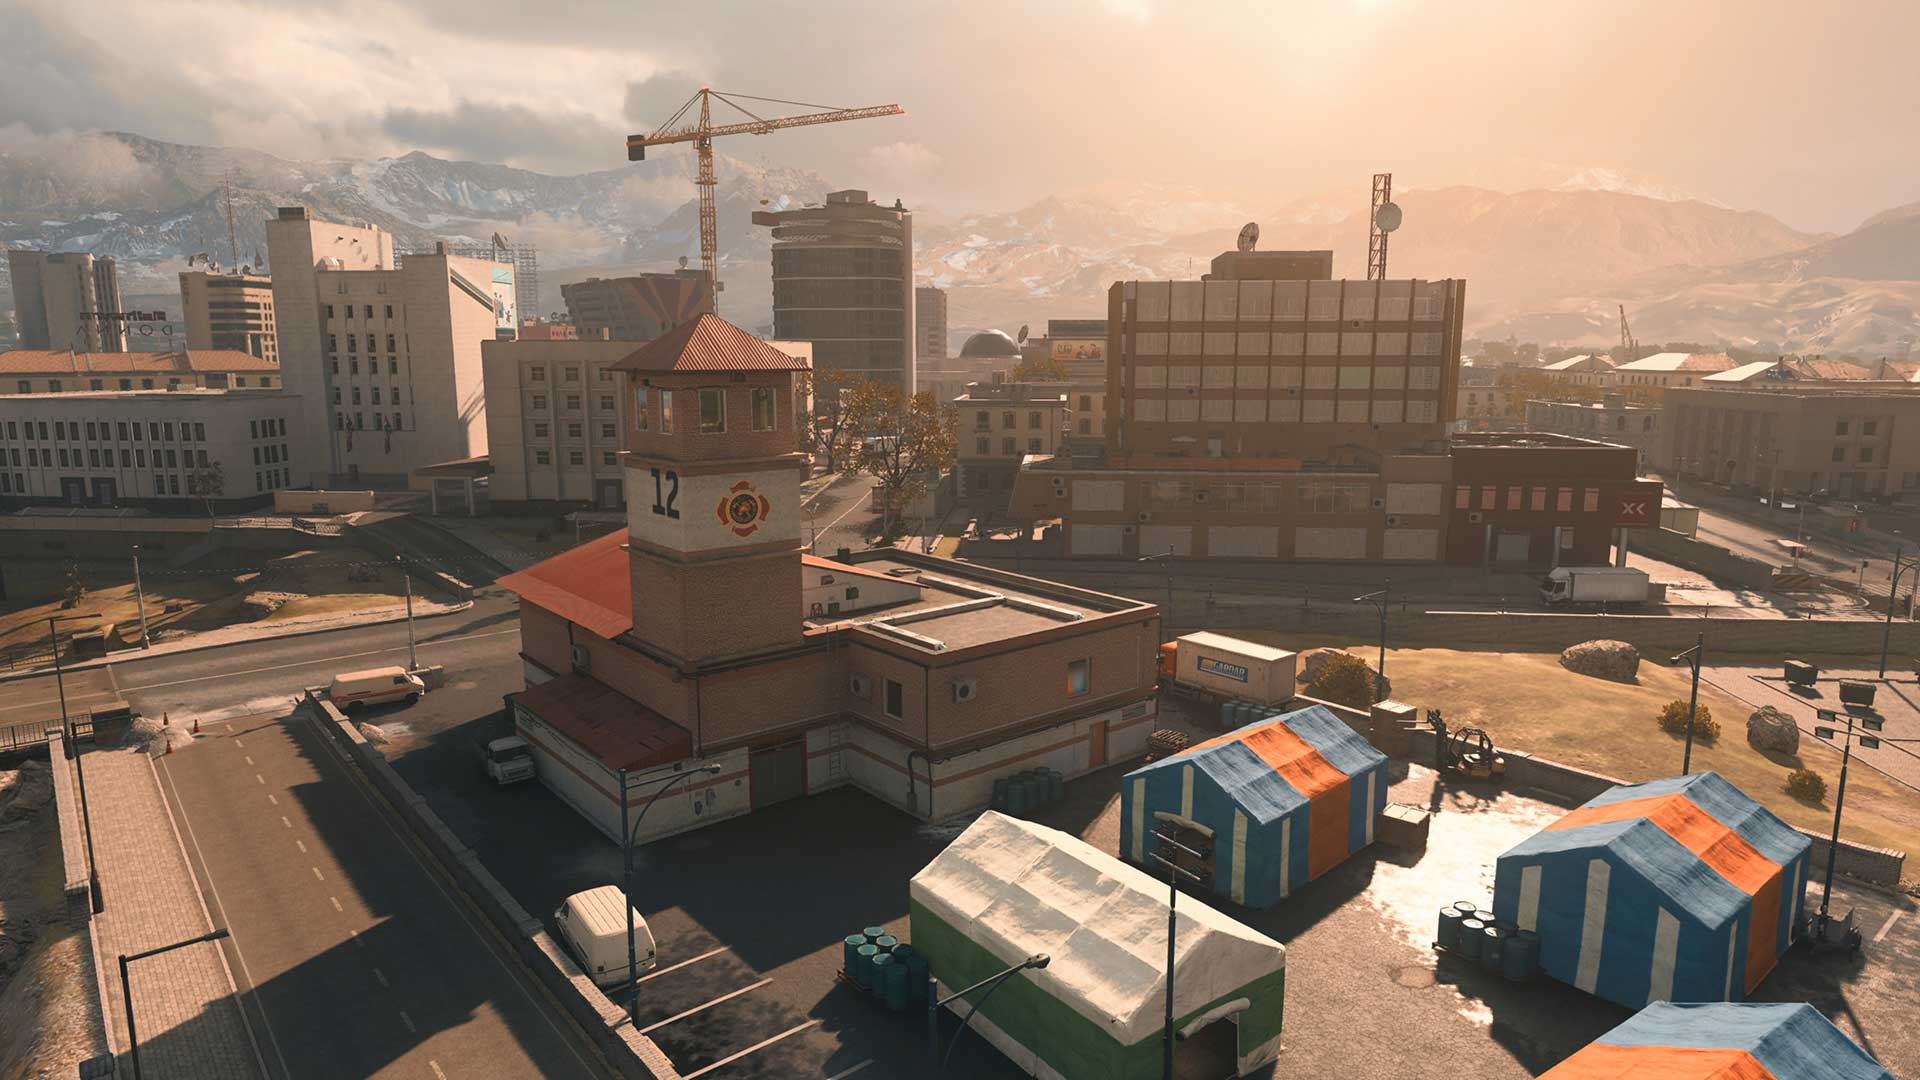 South Verdansk Downtown FD – City Overwatch